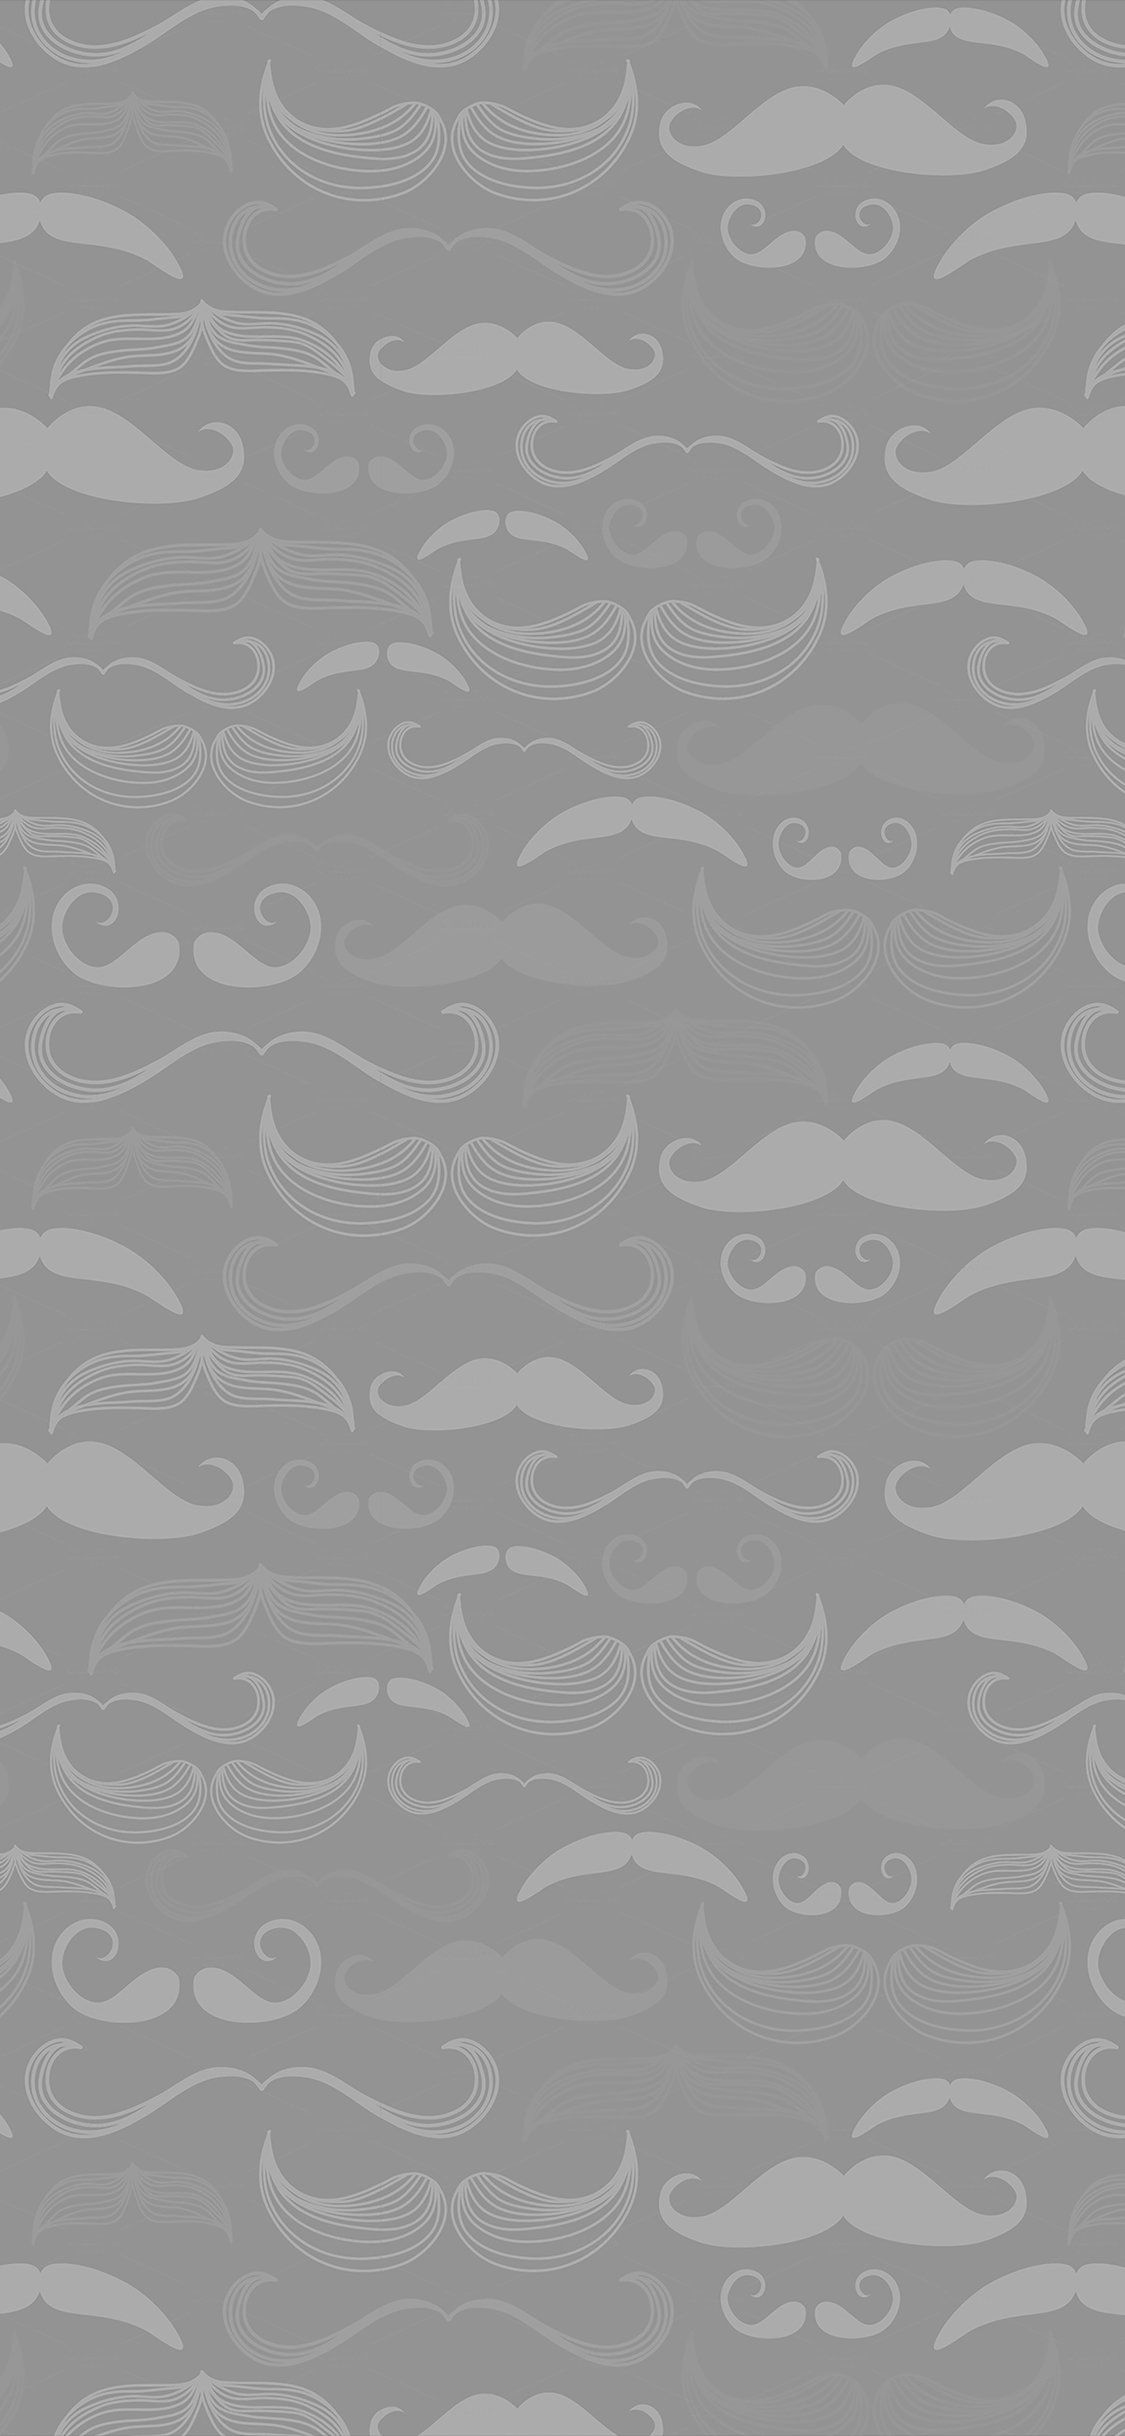 1125x2436 iPhonePapers - ve73-hipster-moustache-cute-light-patterns